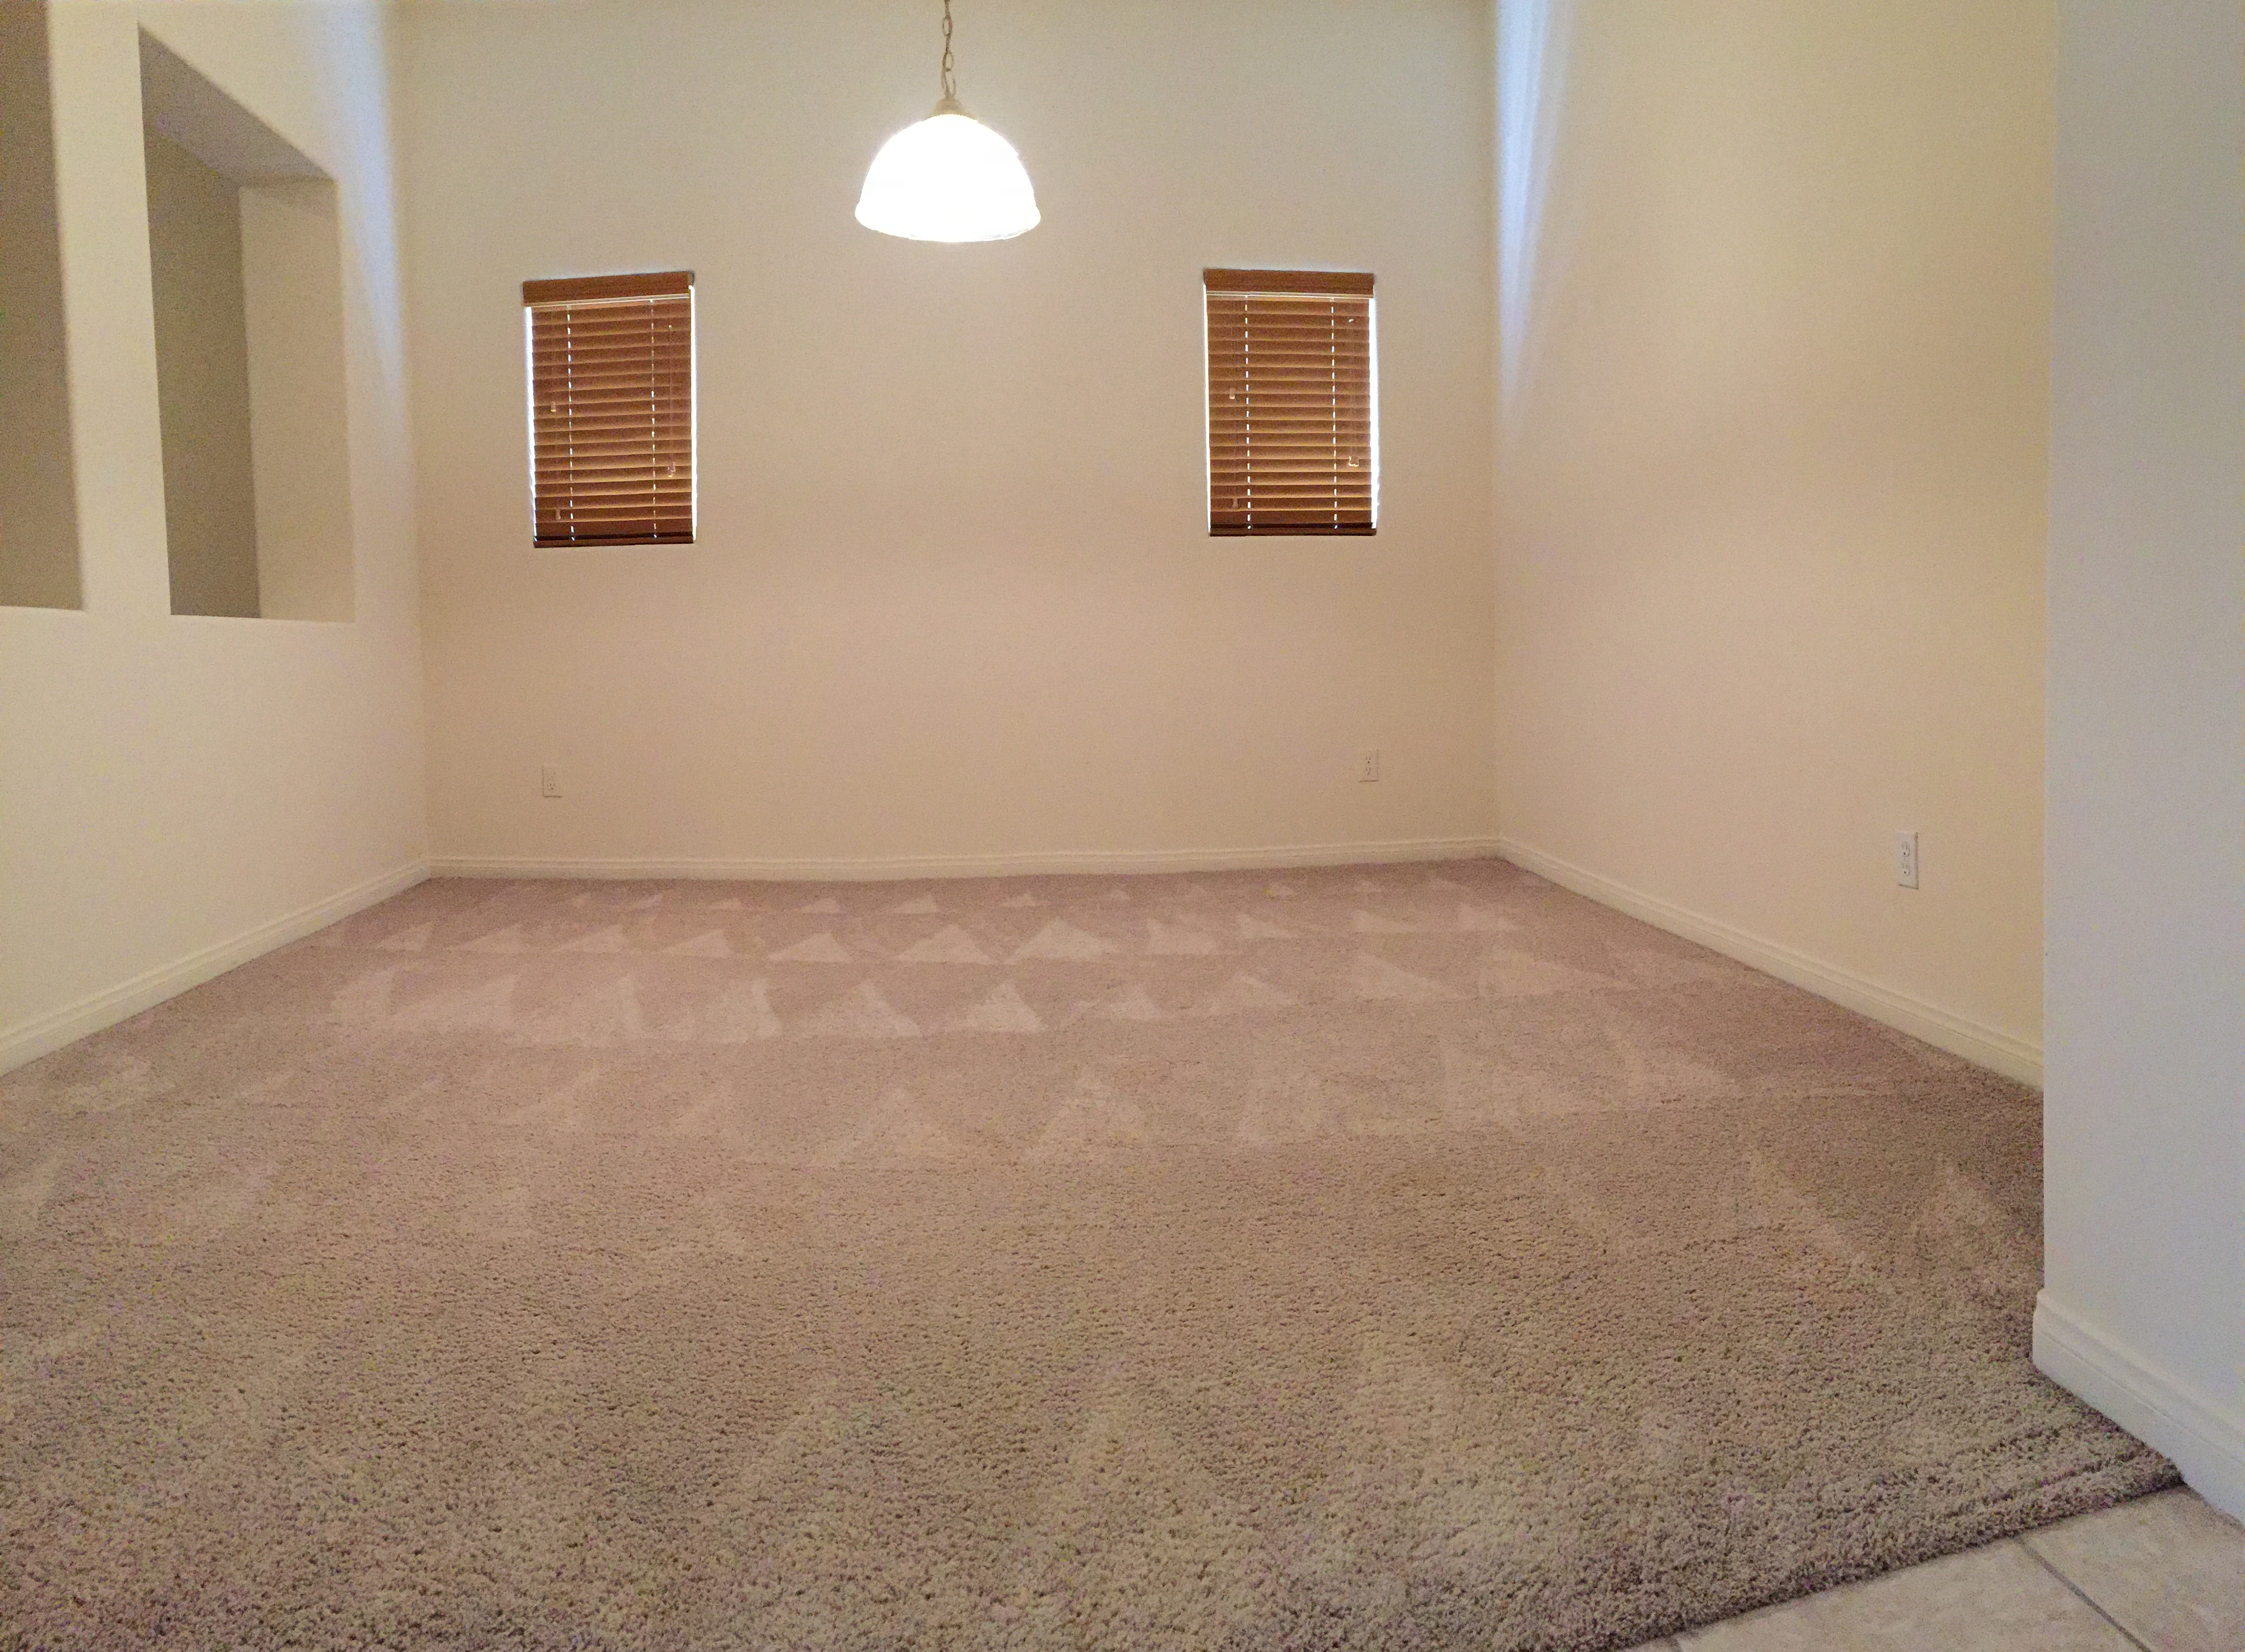 2095 10402 Loughton Ave Bakersfield CA 93311 Rented Southwest Home